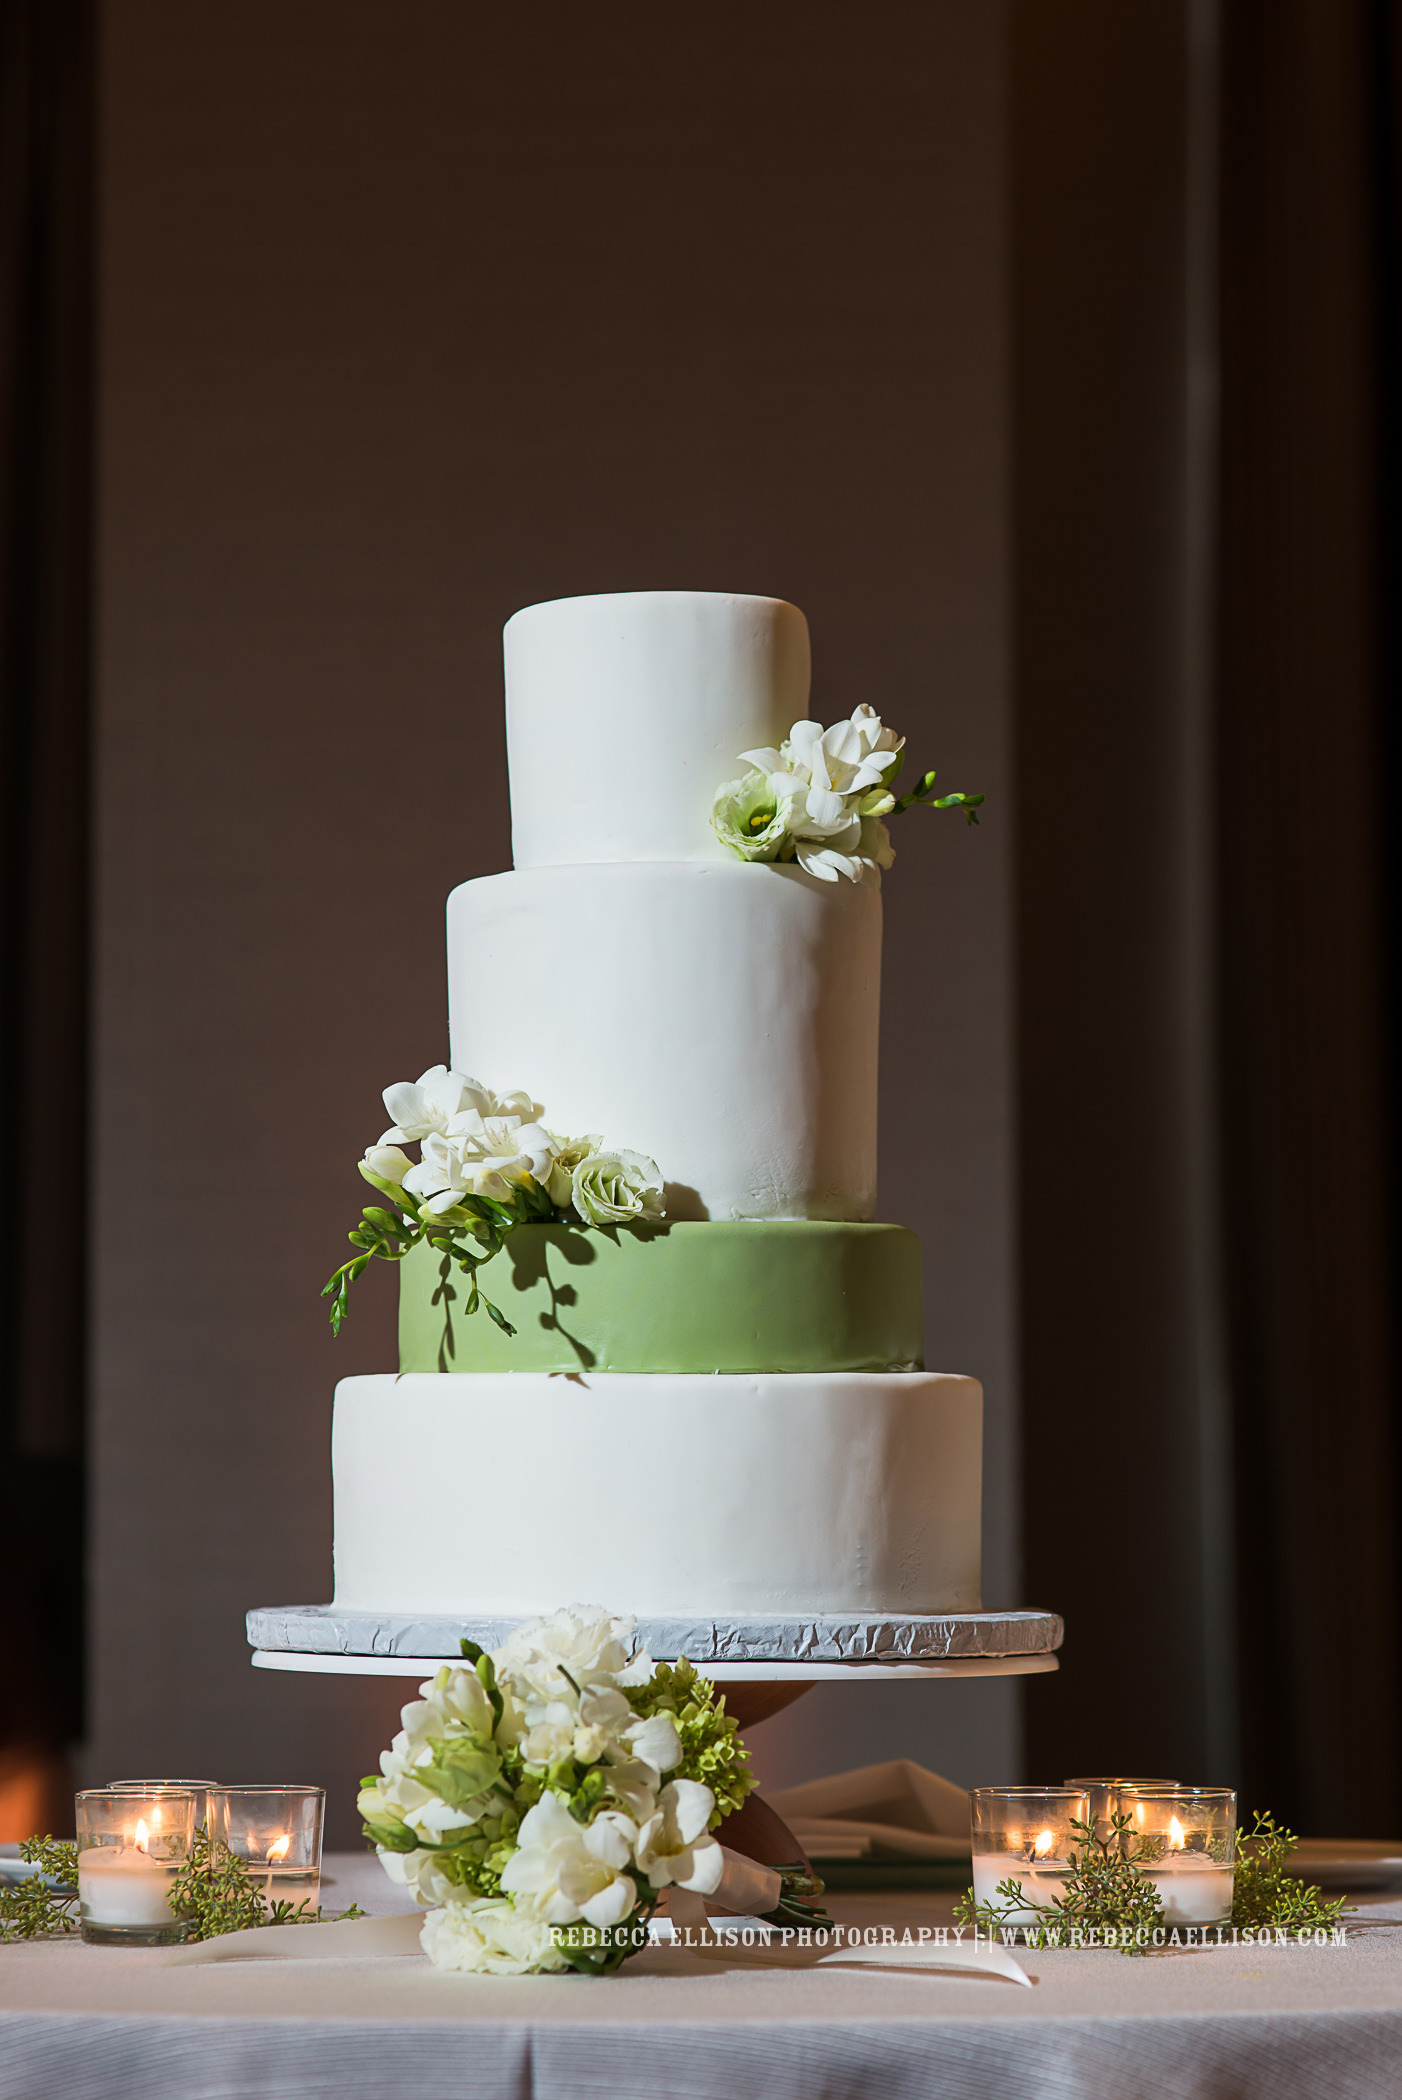 Cake Decorated with White Freesia